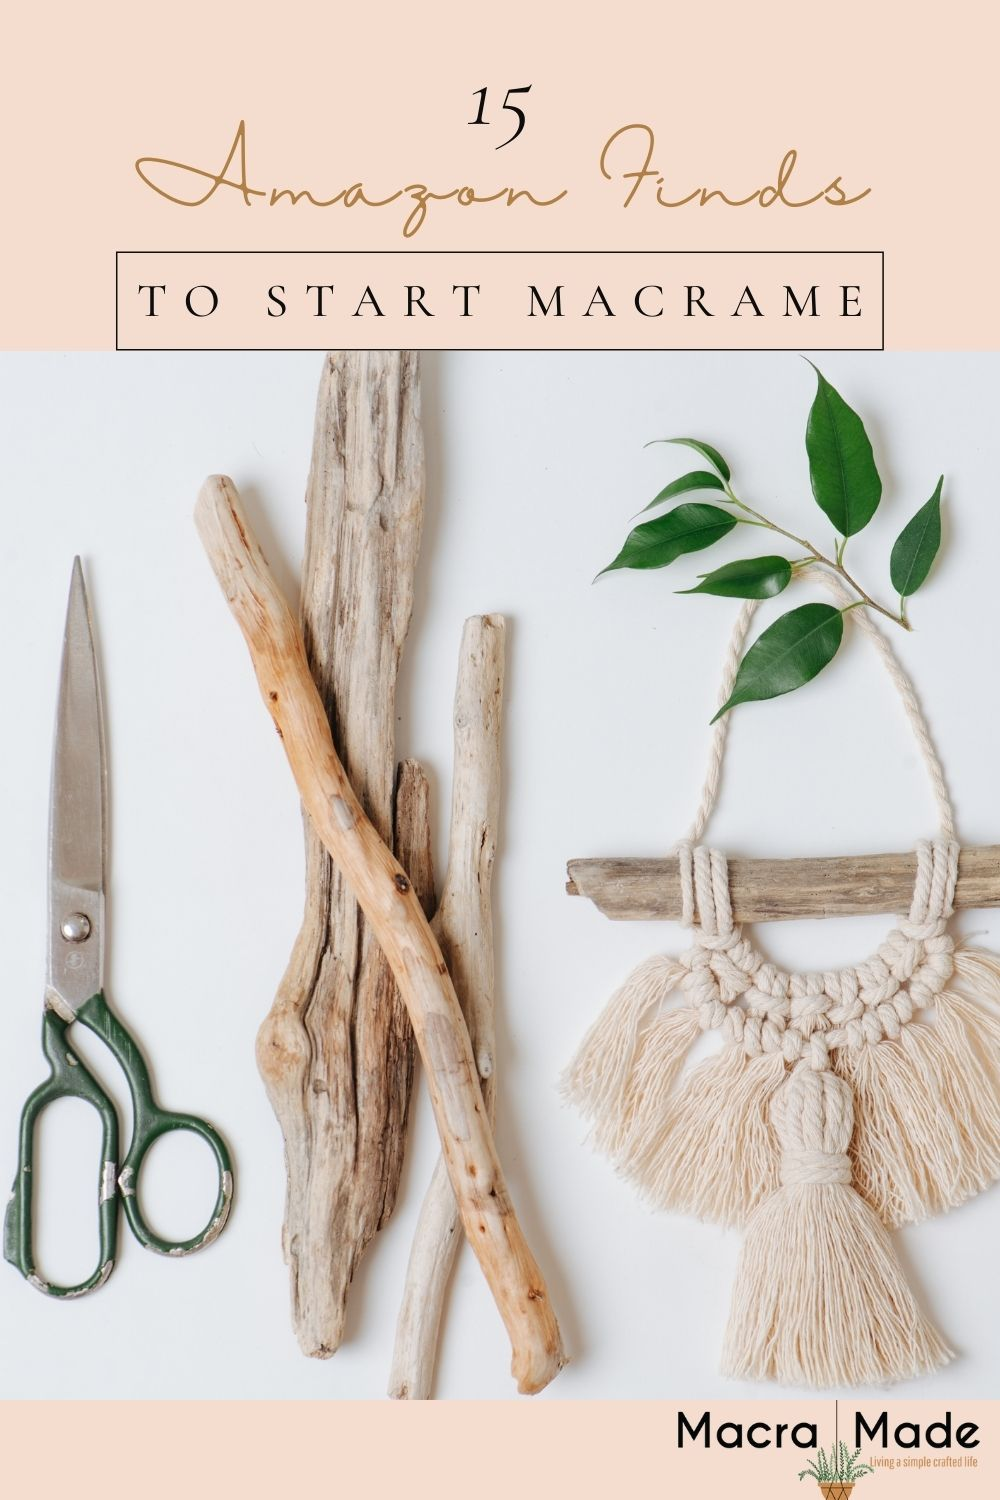 image of scissors, driftwood and mini macrame wall hanging with text overlay